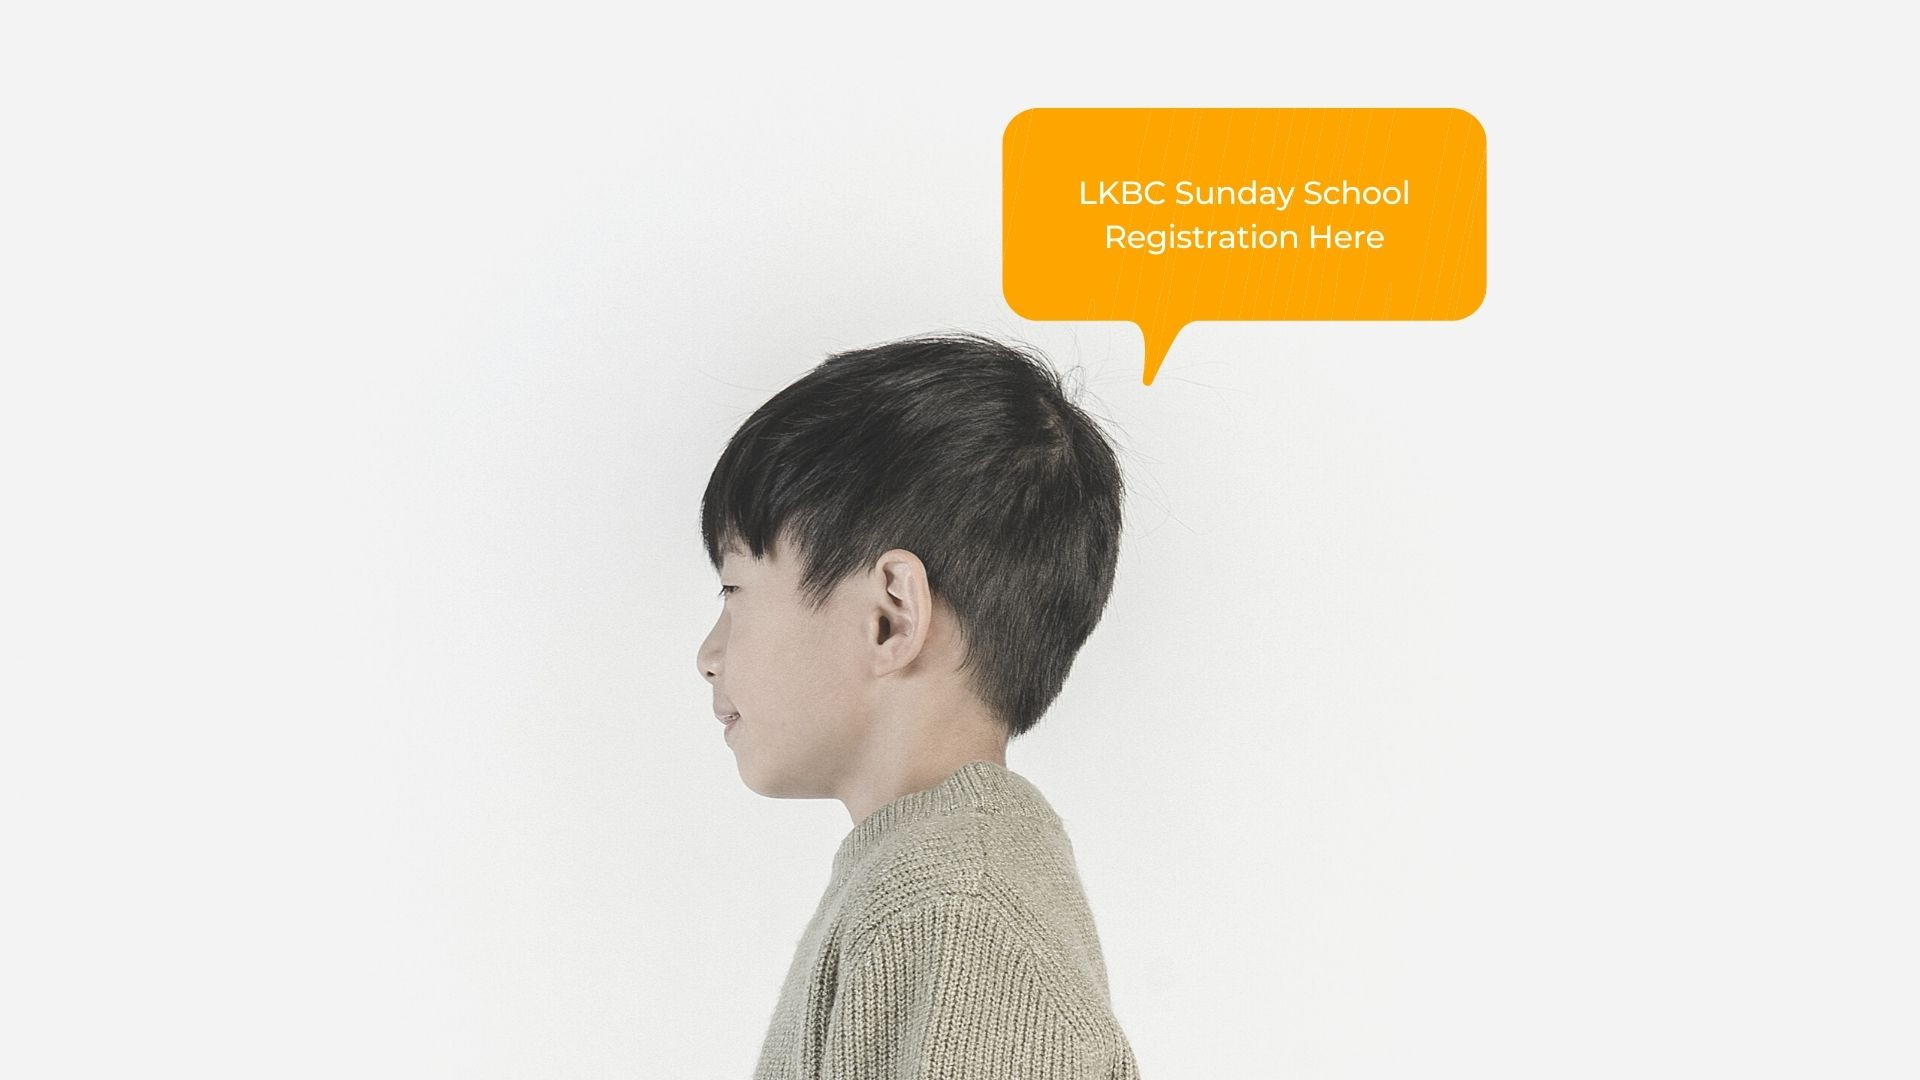 LKBC Sunday School Registration Here